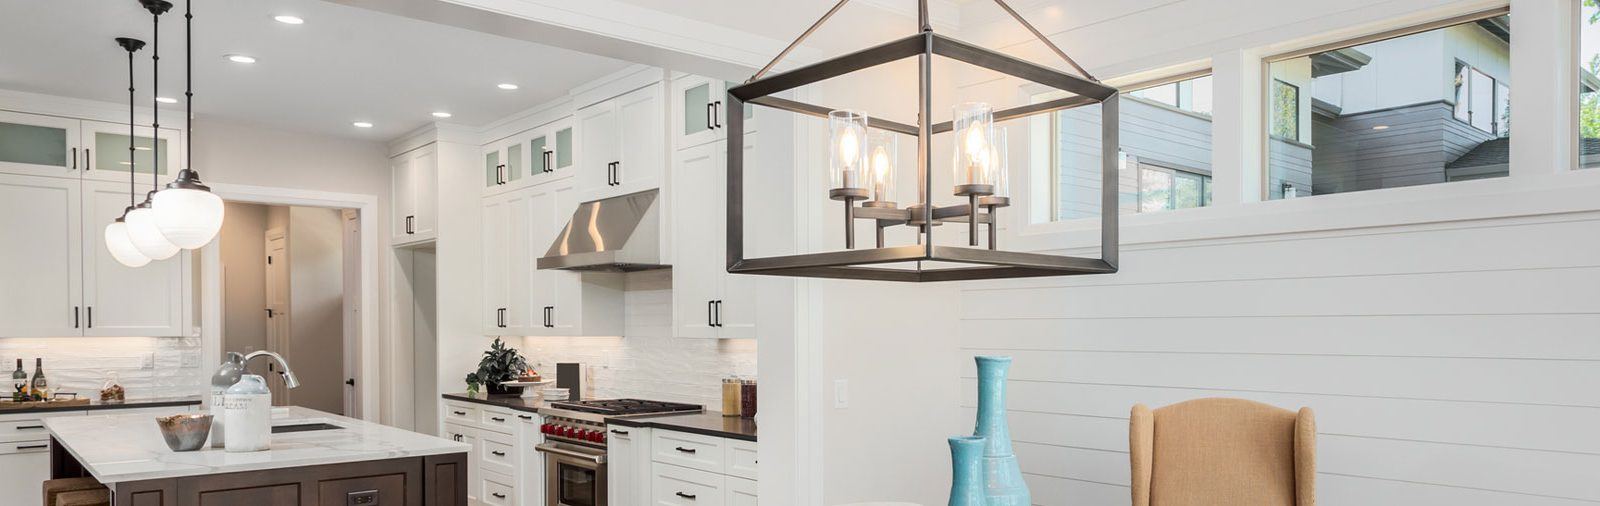 Interior kitchen lighting installation - Qualicum Beach, Parksville, Nanaimo electrical company, Collins Electric